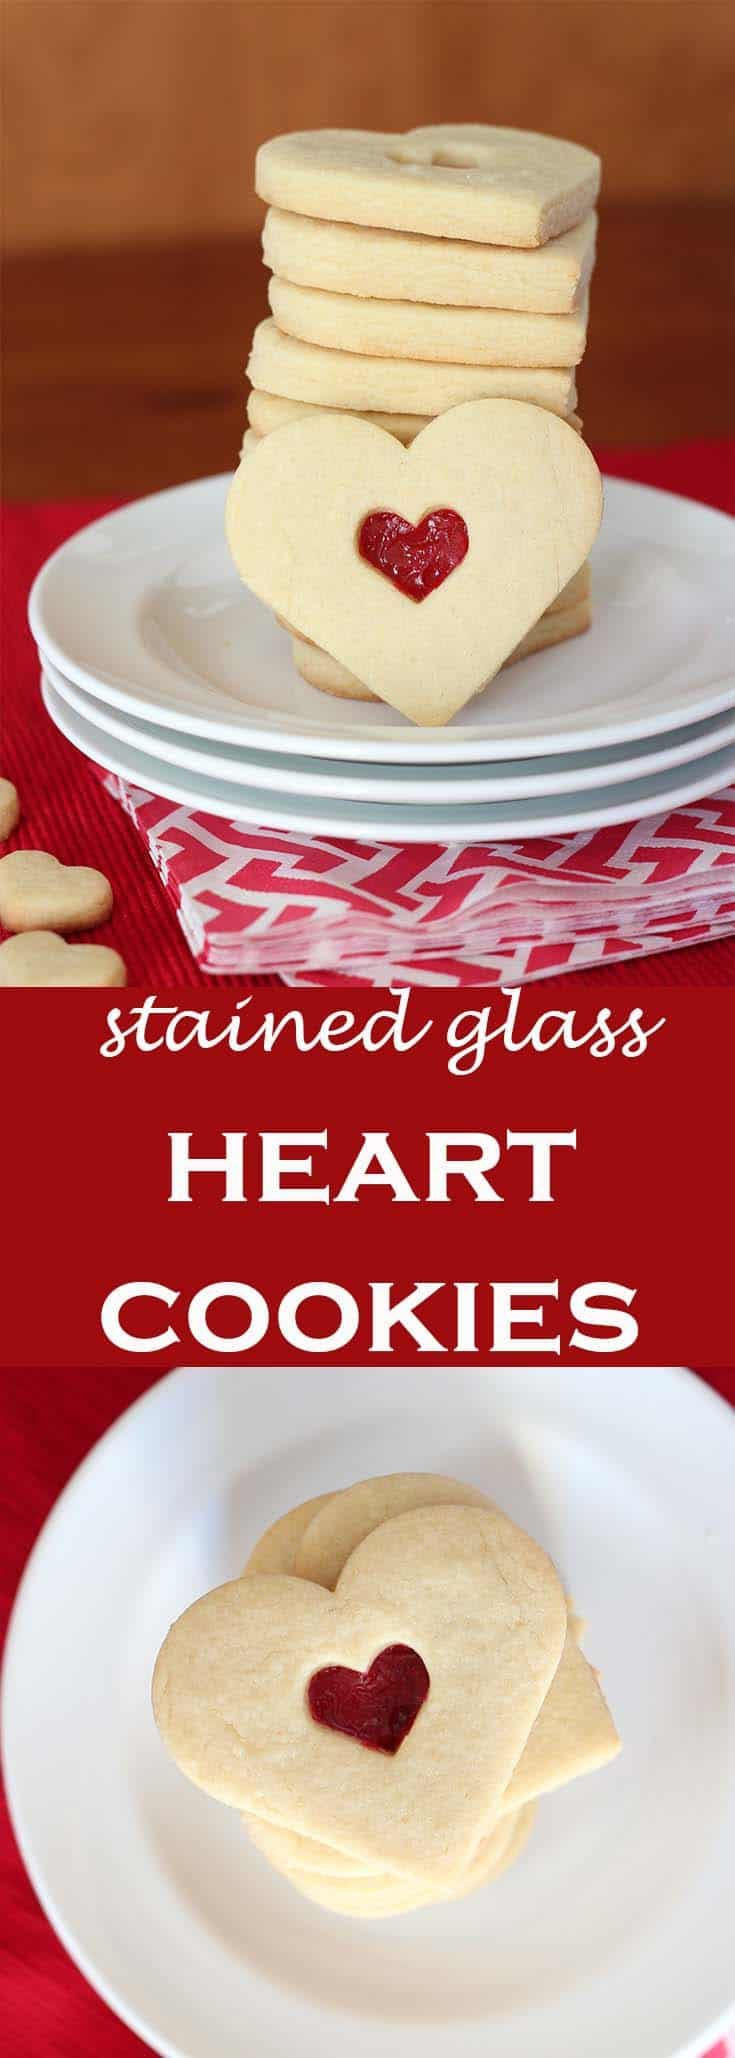 Stained glass heart cookies made with a candy filling of Jolly Ranchers are a festive treat for Valentine's Day. #abakershouse #Valentines #cookierecipe #heartcookies